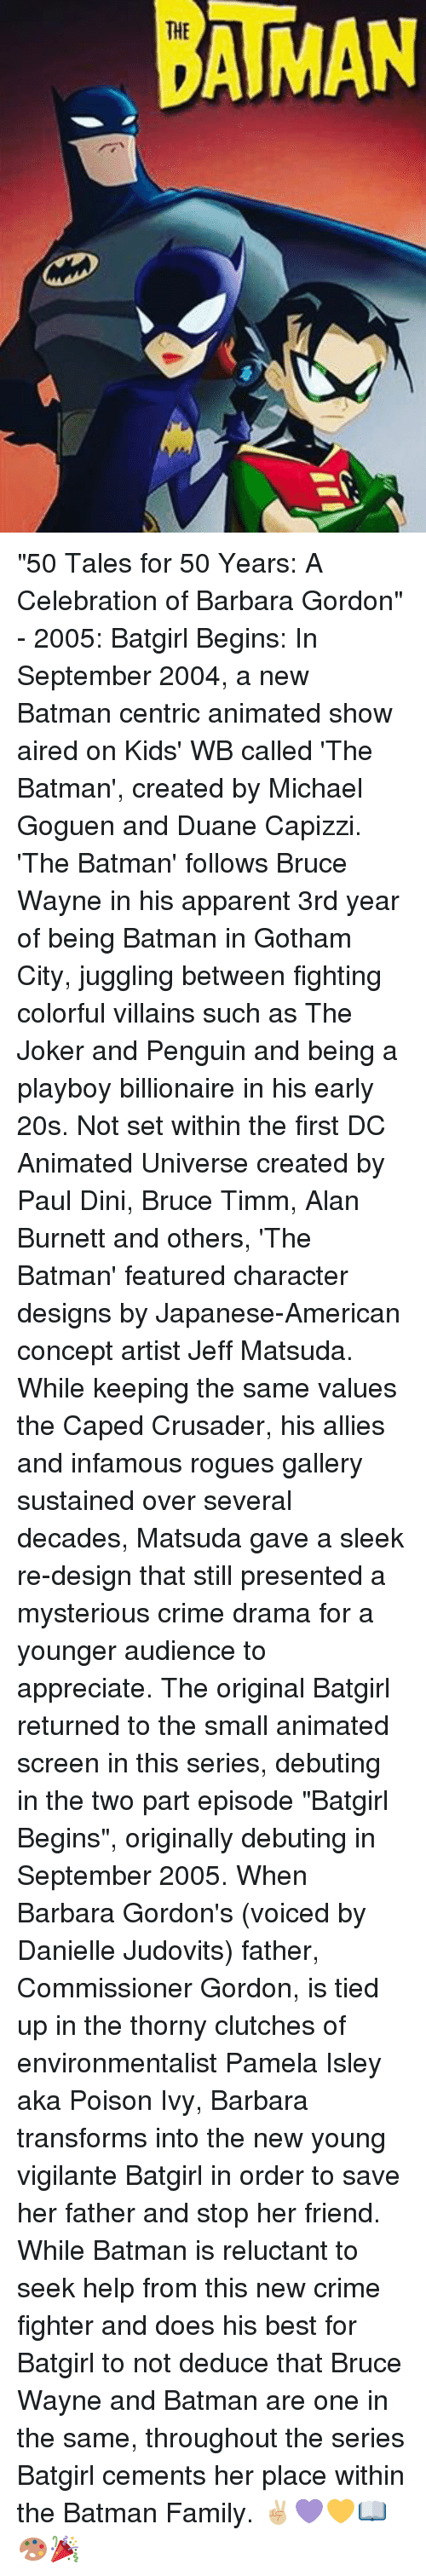 "Memes, Playboy, and Poison Ivy: AMAN ""50 Tales for 50 Years: A Celebration of Barbara Gordon"" - 2005: Batgirl Begins: In September 2004, a new Batman centric animated show aired on Kids' WB called 'The Batman', created by Michael Goguen and Duane Capizzi. 'The Batman' follows Bruce Wayne in his apparent 3rd year of being Batman in Gotham City, juggling between fighting colorful villains such as The Joker and Penguin and being a playboy billionaire in his early 20s. Not set within the first DC Animated Universe created by Paul Dini, Bruce Timm, Alan Burnett and others, 'The Batman' featured character designs by Japanese-American concept artist Jeff Matsuda. While keeping the same values the Caped Crusader, his allies and infamous rogues gallery sustained over several decades, Matsuda gave a sleek re-design that still presented a mysterious crime drama for a younger audience to appreciate. The original Batgirl returned to the small animated screen in this series, debuting in the two part episode ""Batgirl Begins"", originally debuting in September 2005. When Barbara Gordon's (voiced by Danielle Judovits) father, Commissioner Gordon, is tied up in the thorny clutches of environmentalist Pamela Isley aka Poison Ivy, Barbara transforms into the new young vigilante Batgirl in order to save her father and stop her friend. While Batman is reluctant to seek help from this new crime fighter and does his best for Batgirl to not deduce that Bruce Wayne and Batman are one in the same, throughout the series Batgirl cements her place within the Batman Family. ✌🏼💜💛📖🎨🎉"